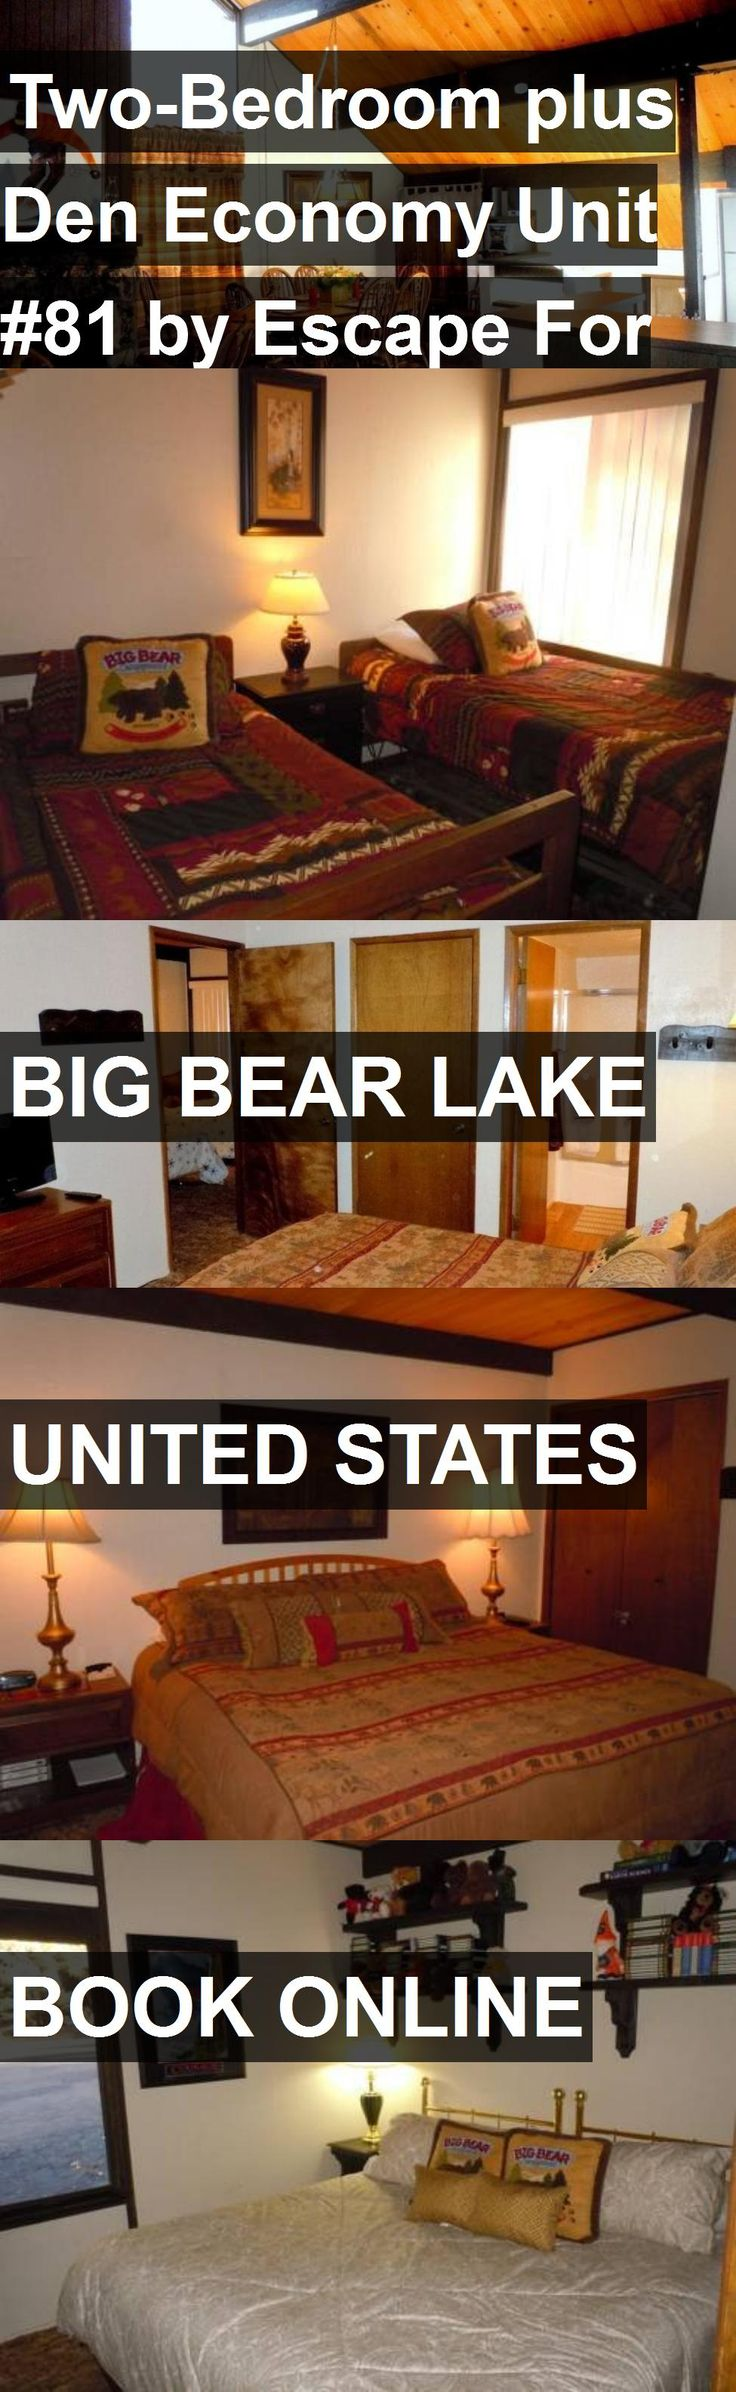 Hotel Two-Bedroom plus Den Economy Unit #81 by Escape For All Seasons in Big Bear Lake, United States. For more information, photos, reviews and best prices please follow the link. #UnitedStates #BigBearLake #travel #vacation #hotel